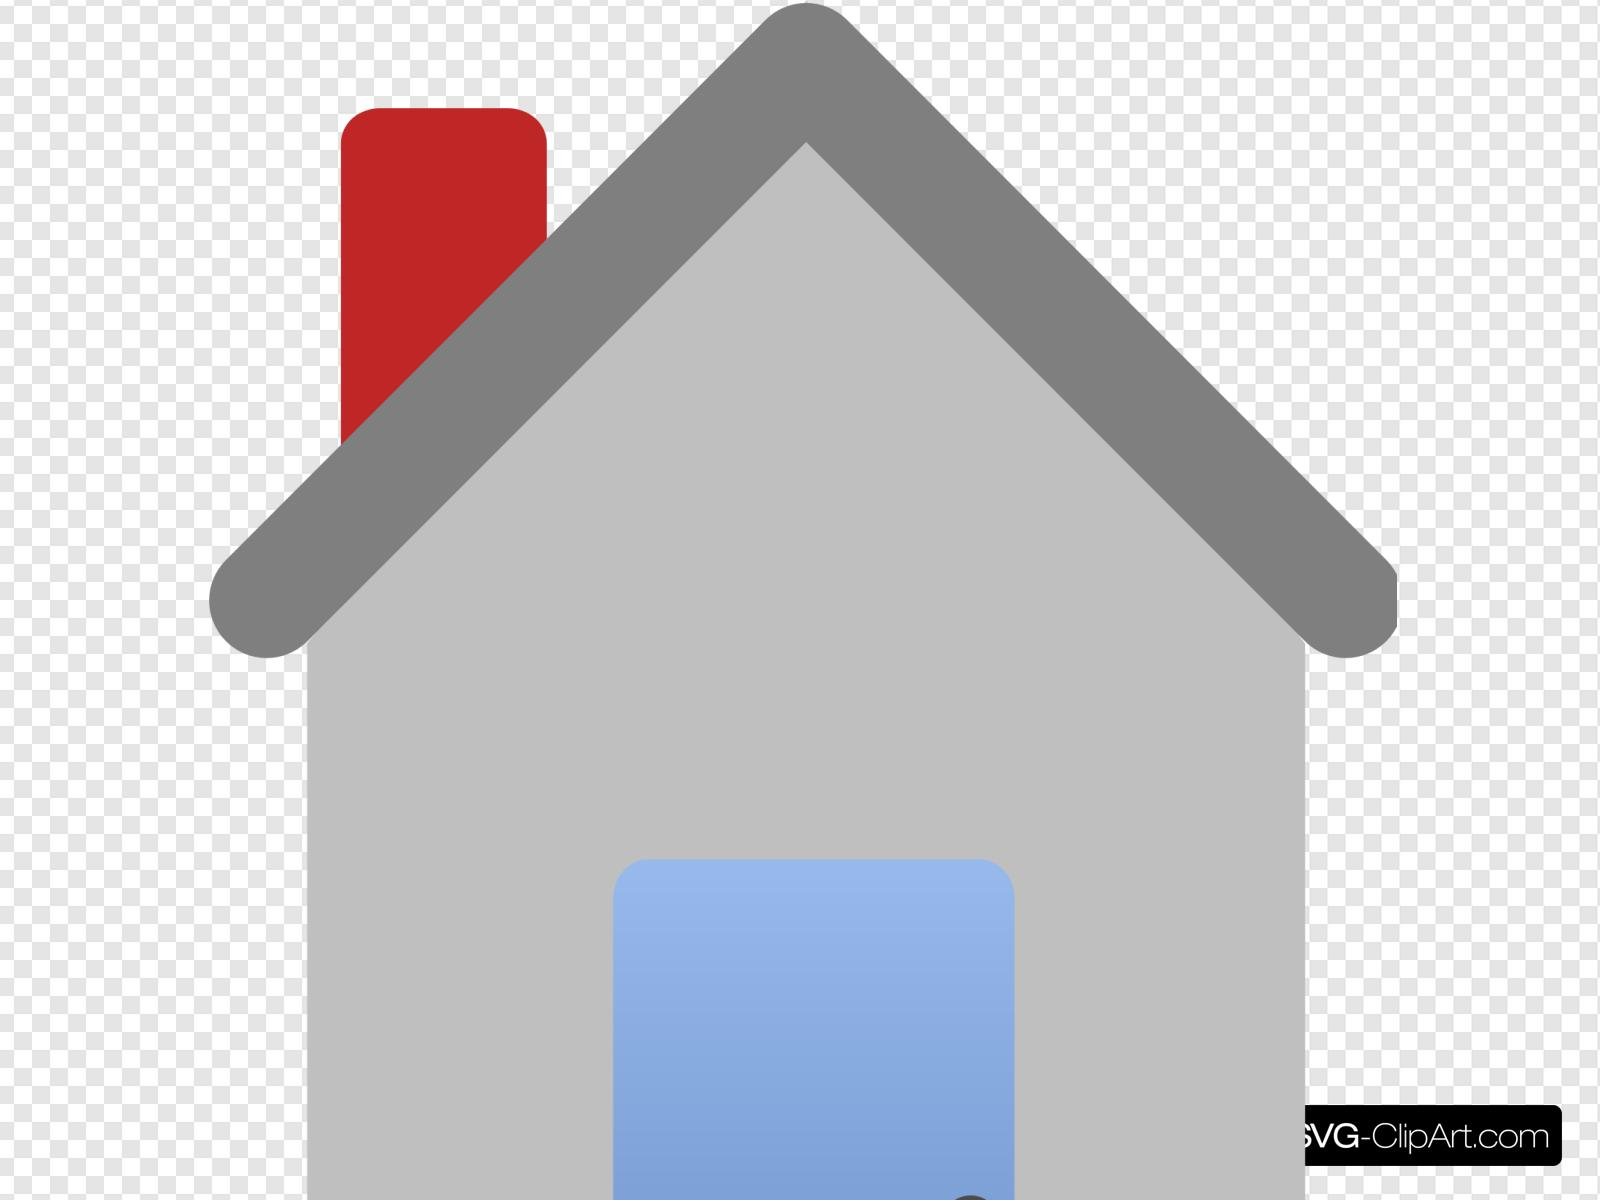 House Plain Clip art, Icon and SVG.